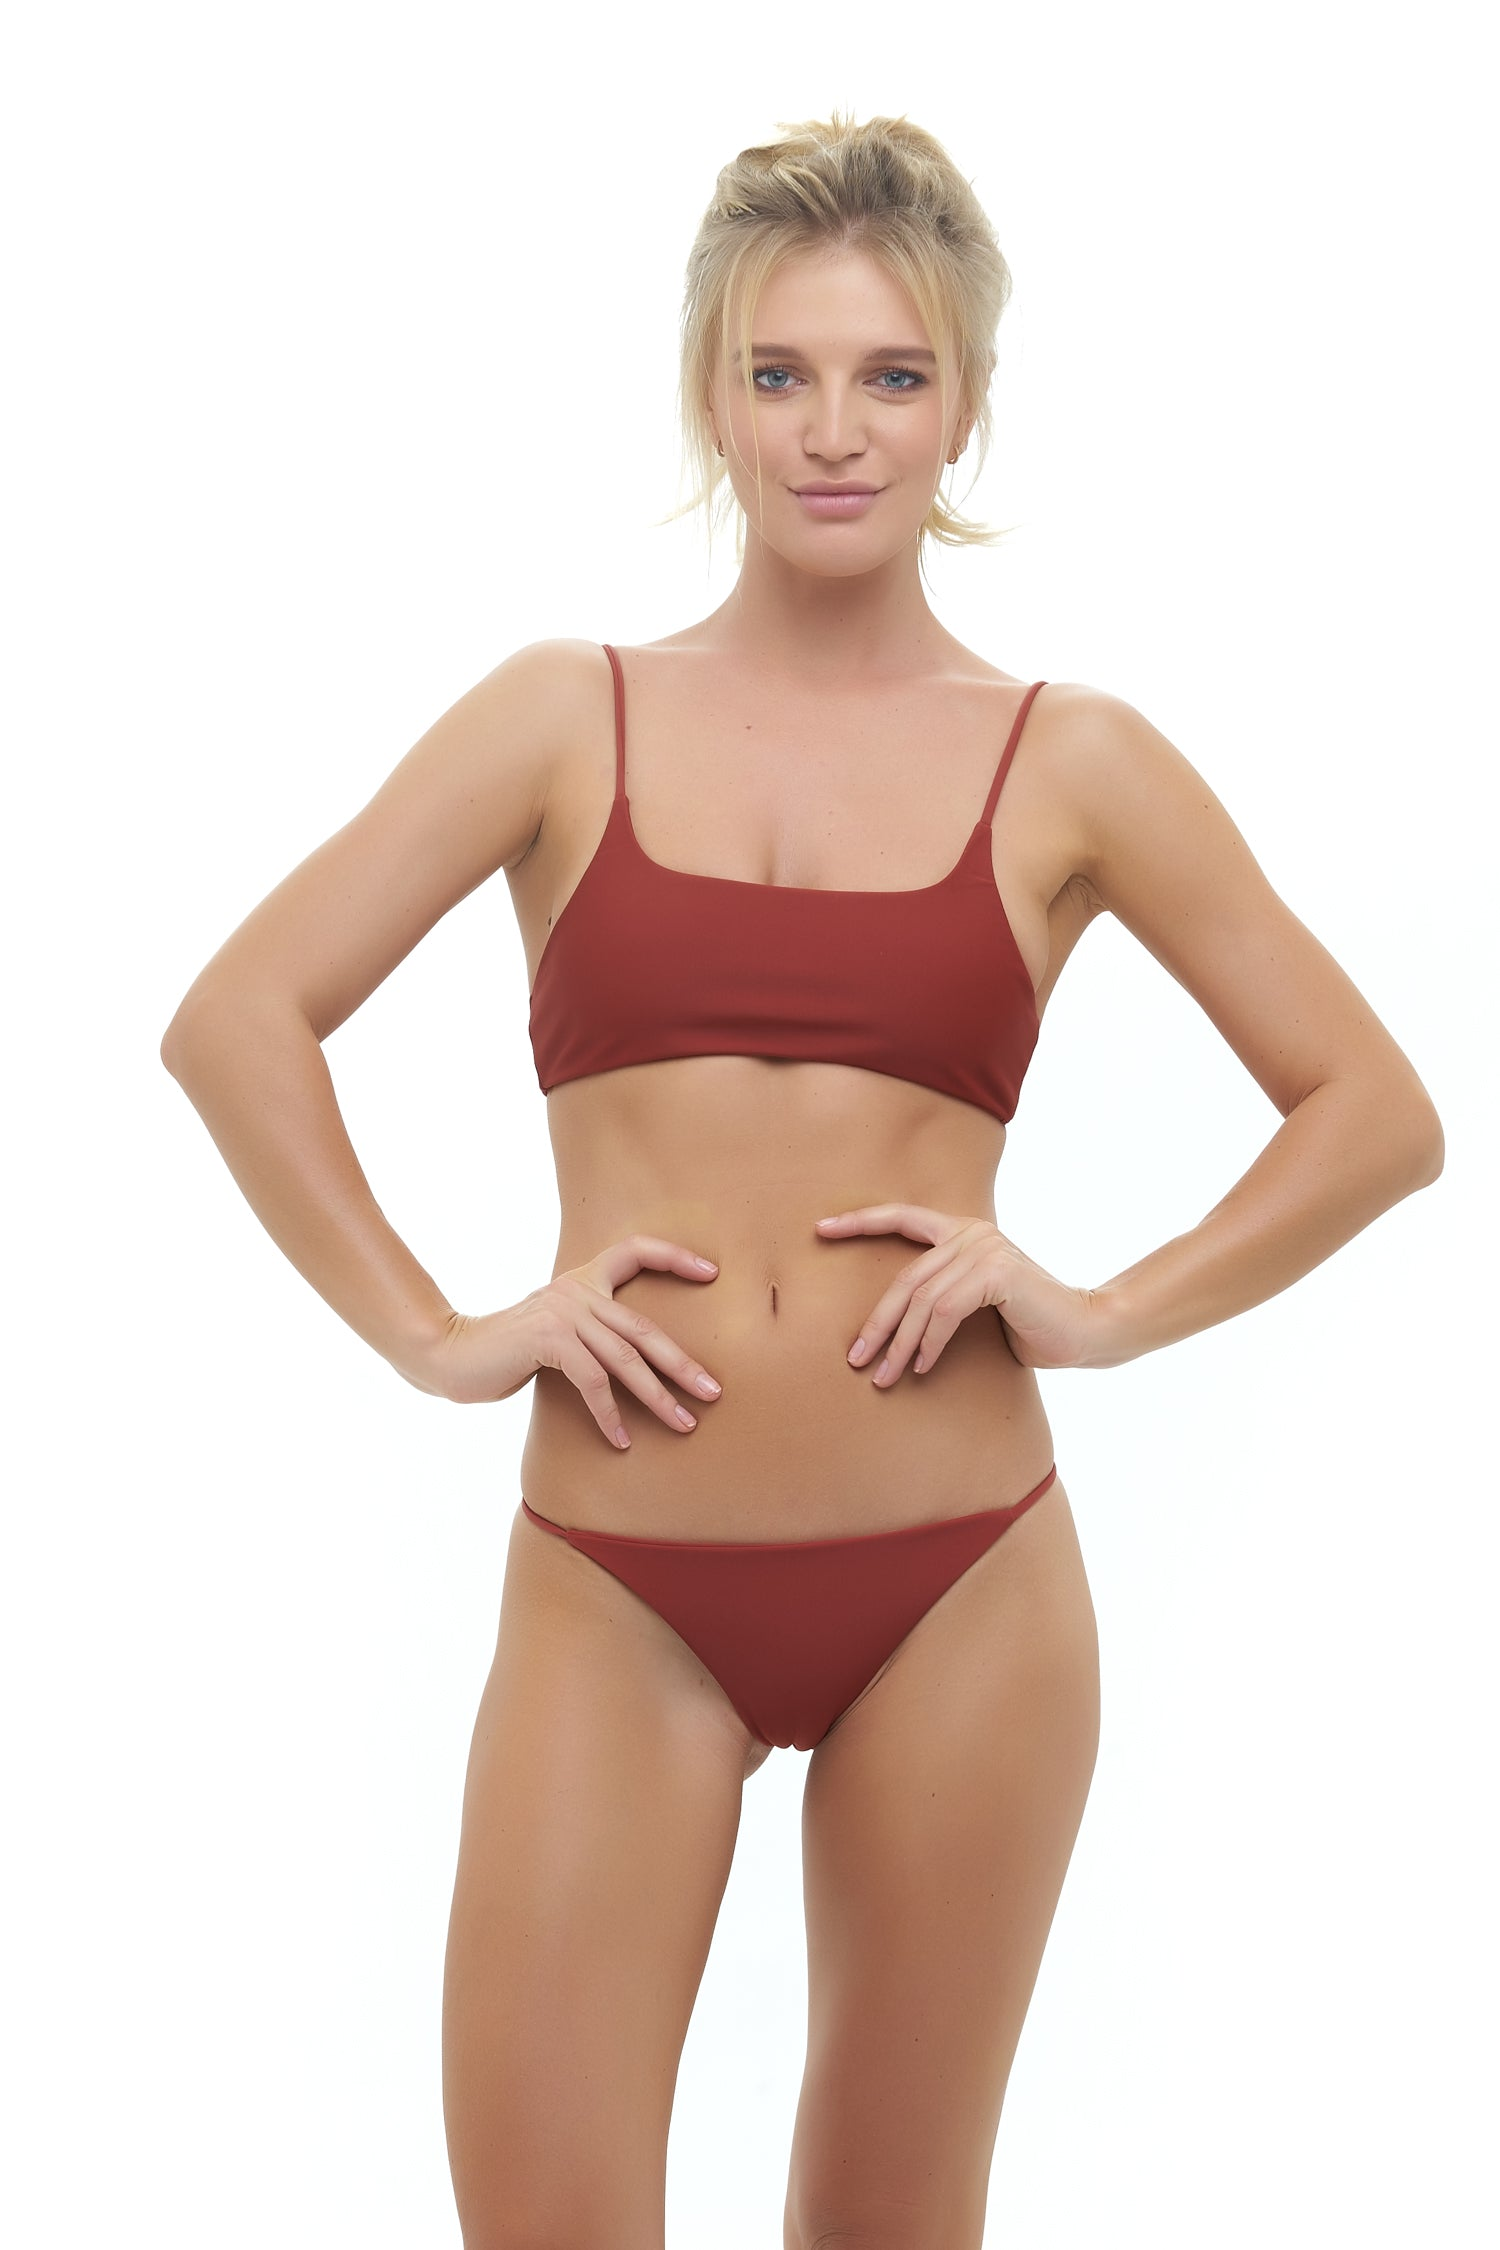 Storm Swimwear - Capri - Tube Single Side Strap Bikini Bottom in Desert Sand